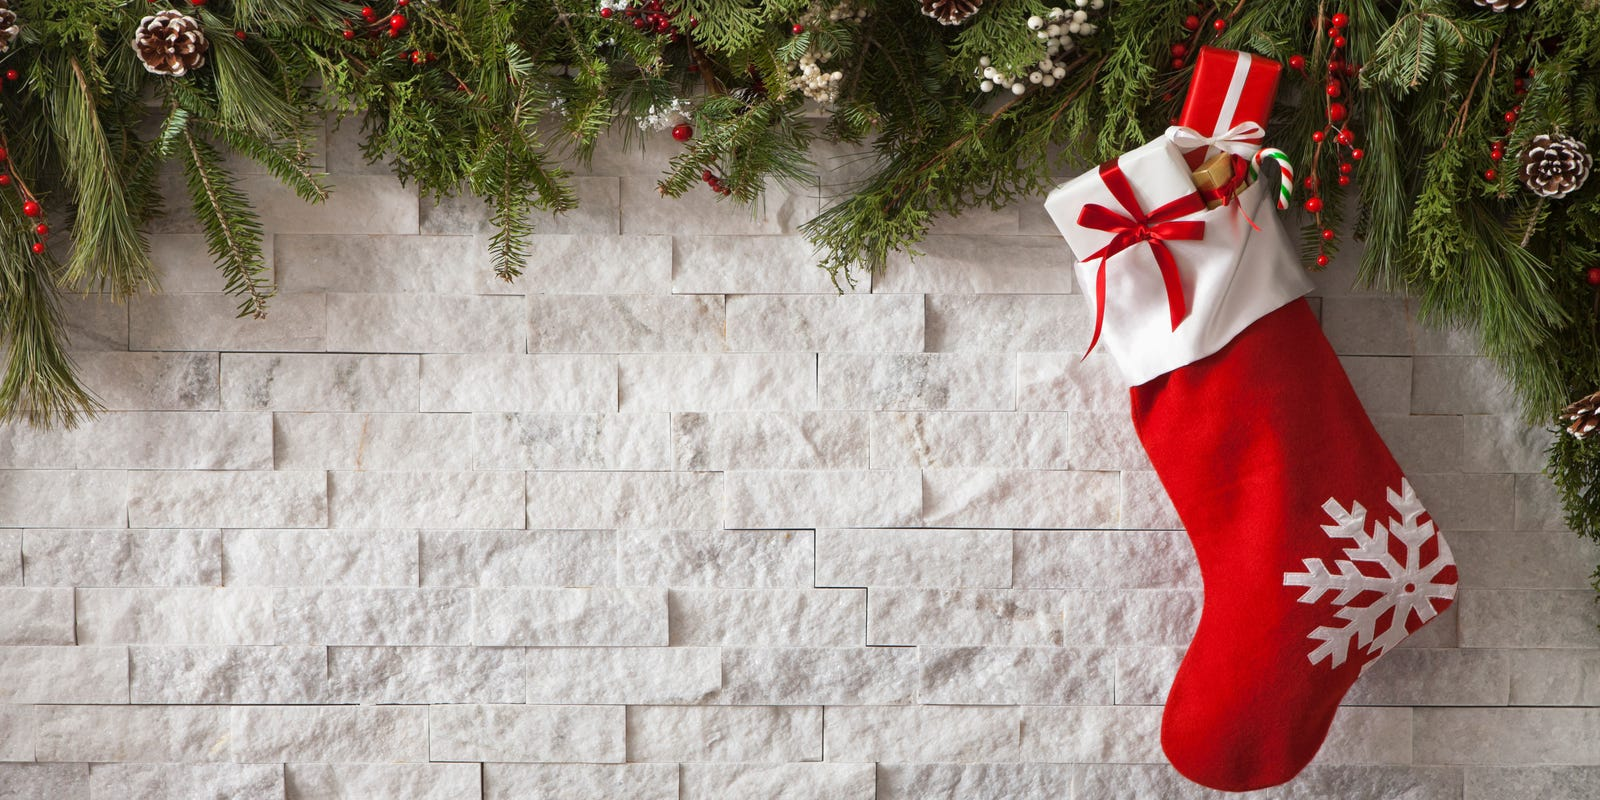 6 unorthodox stocking stuffers for last-minute Christmas gifts